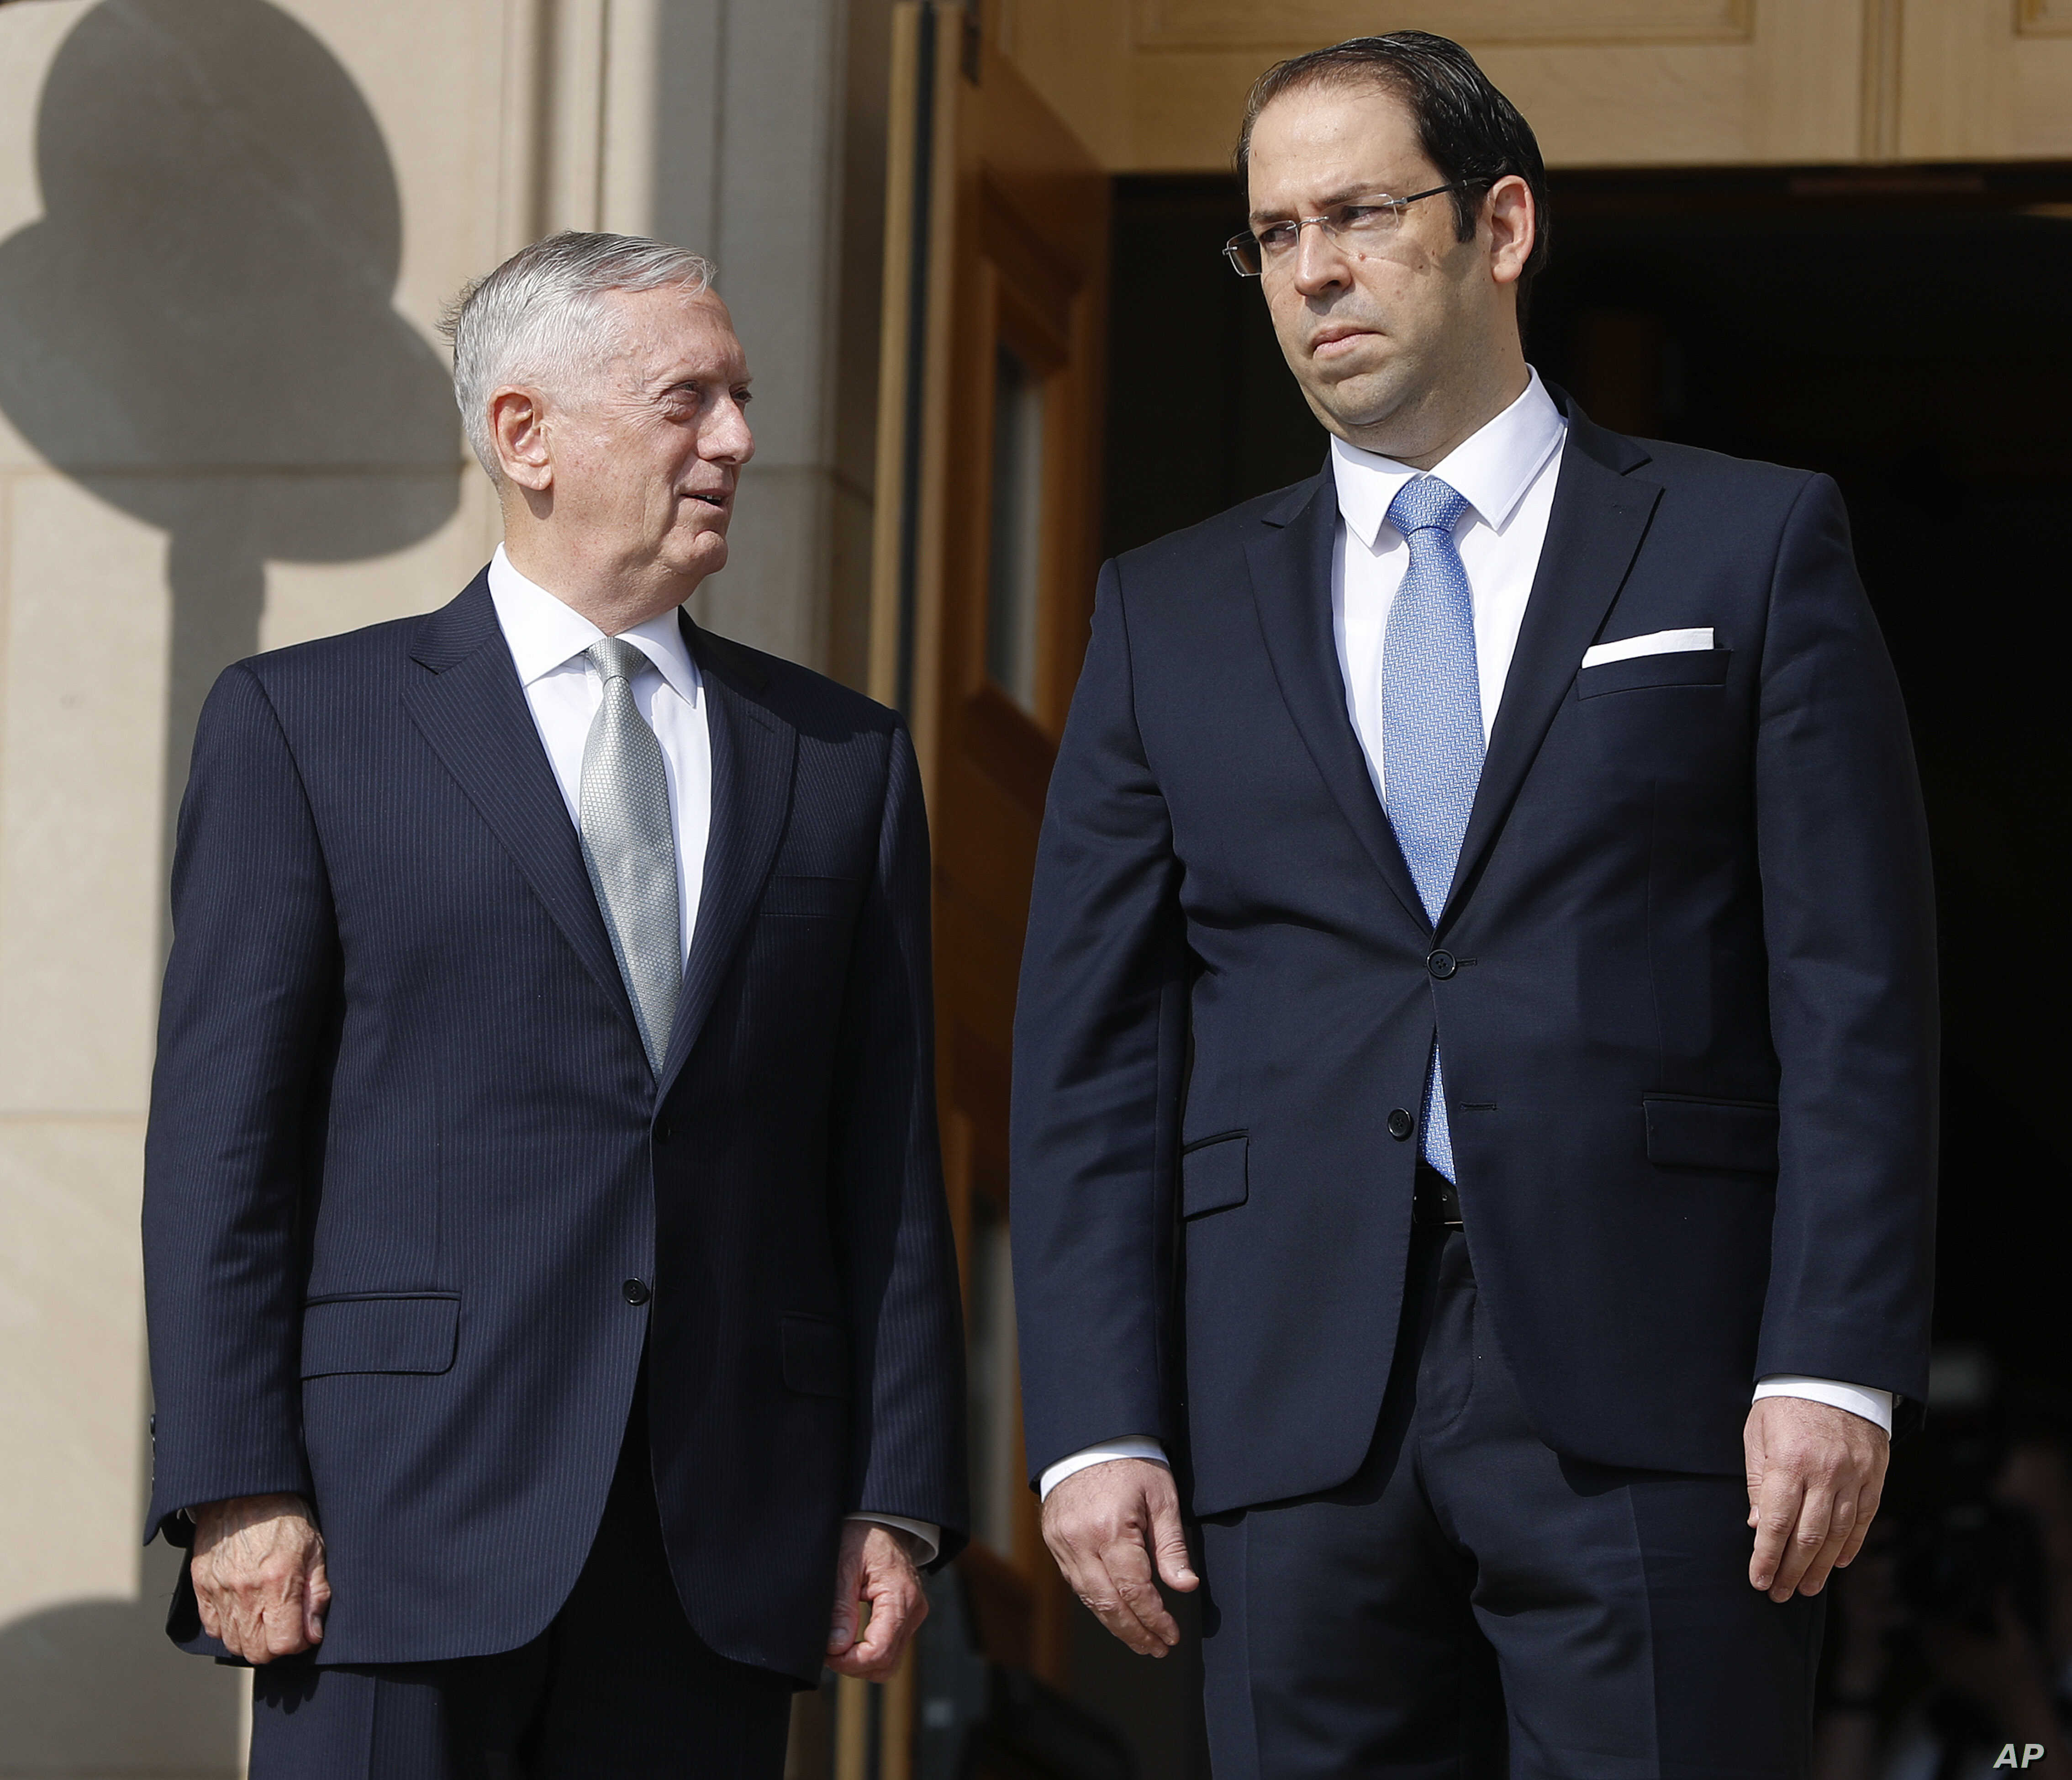 Defense Secretary Jim Mattis hosted an enhanced honor cordon for Tunisian Prime Minister Youssef Chahed at the Pentagon, July 10, 2017.